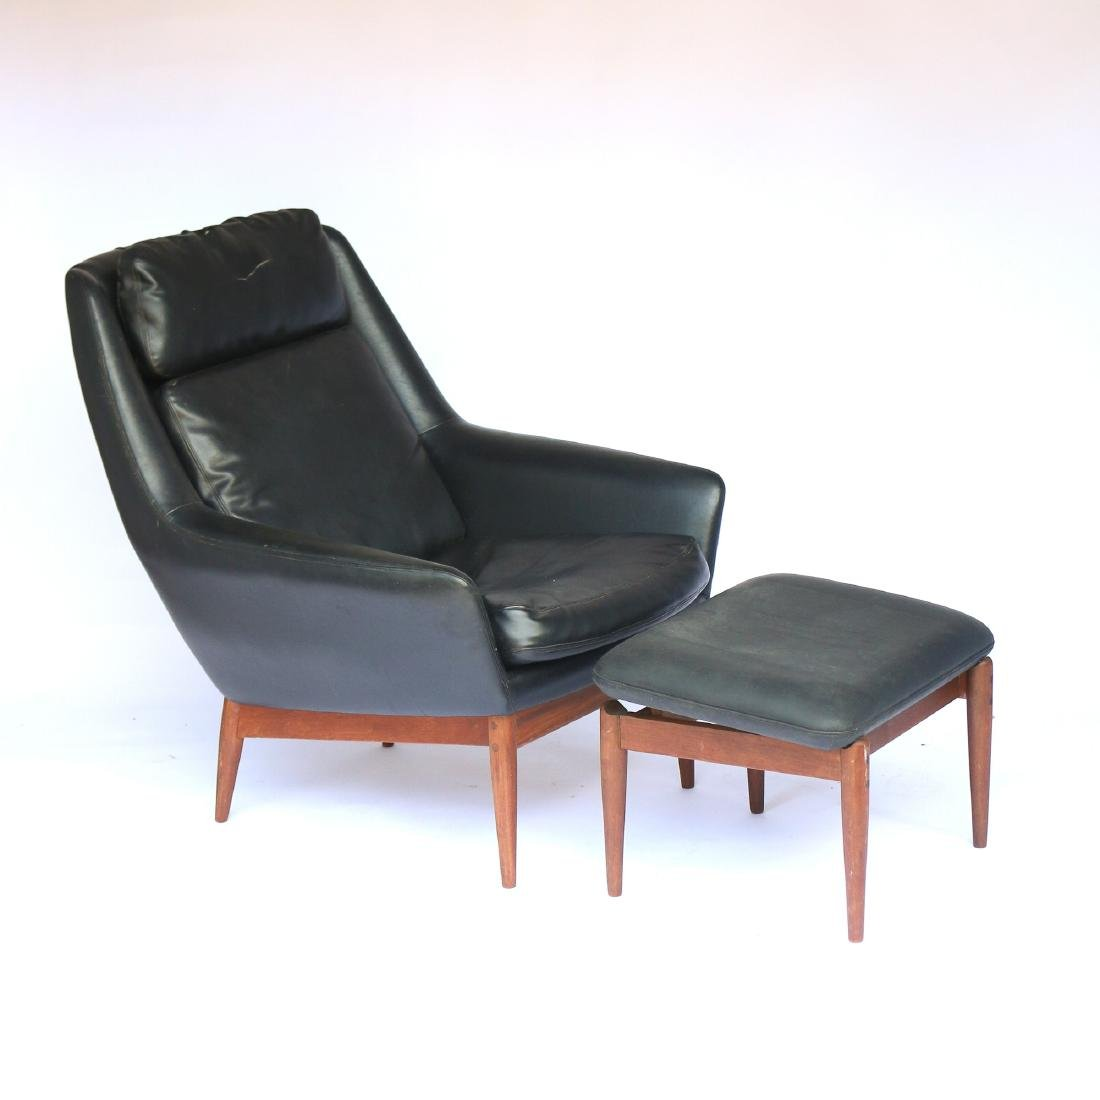 NORWEGIAN WALNUT LOUNGE CHAIR & OTTOMAN